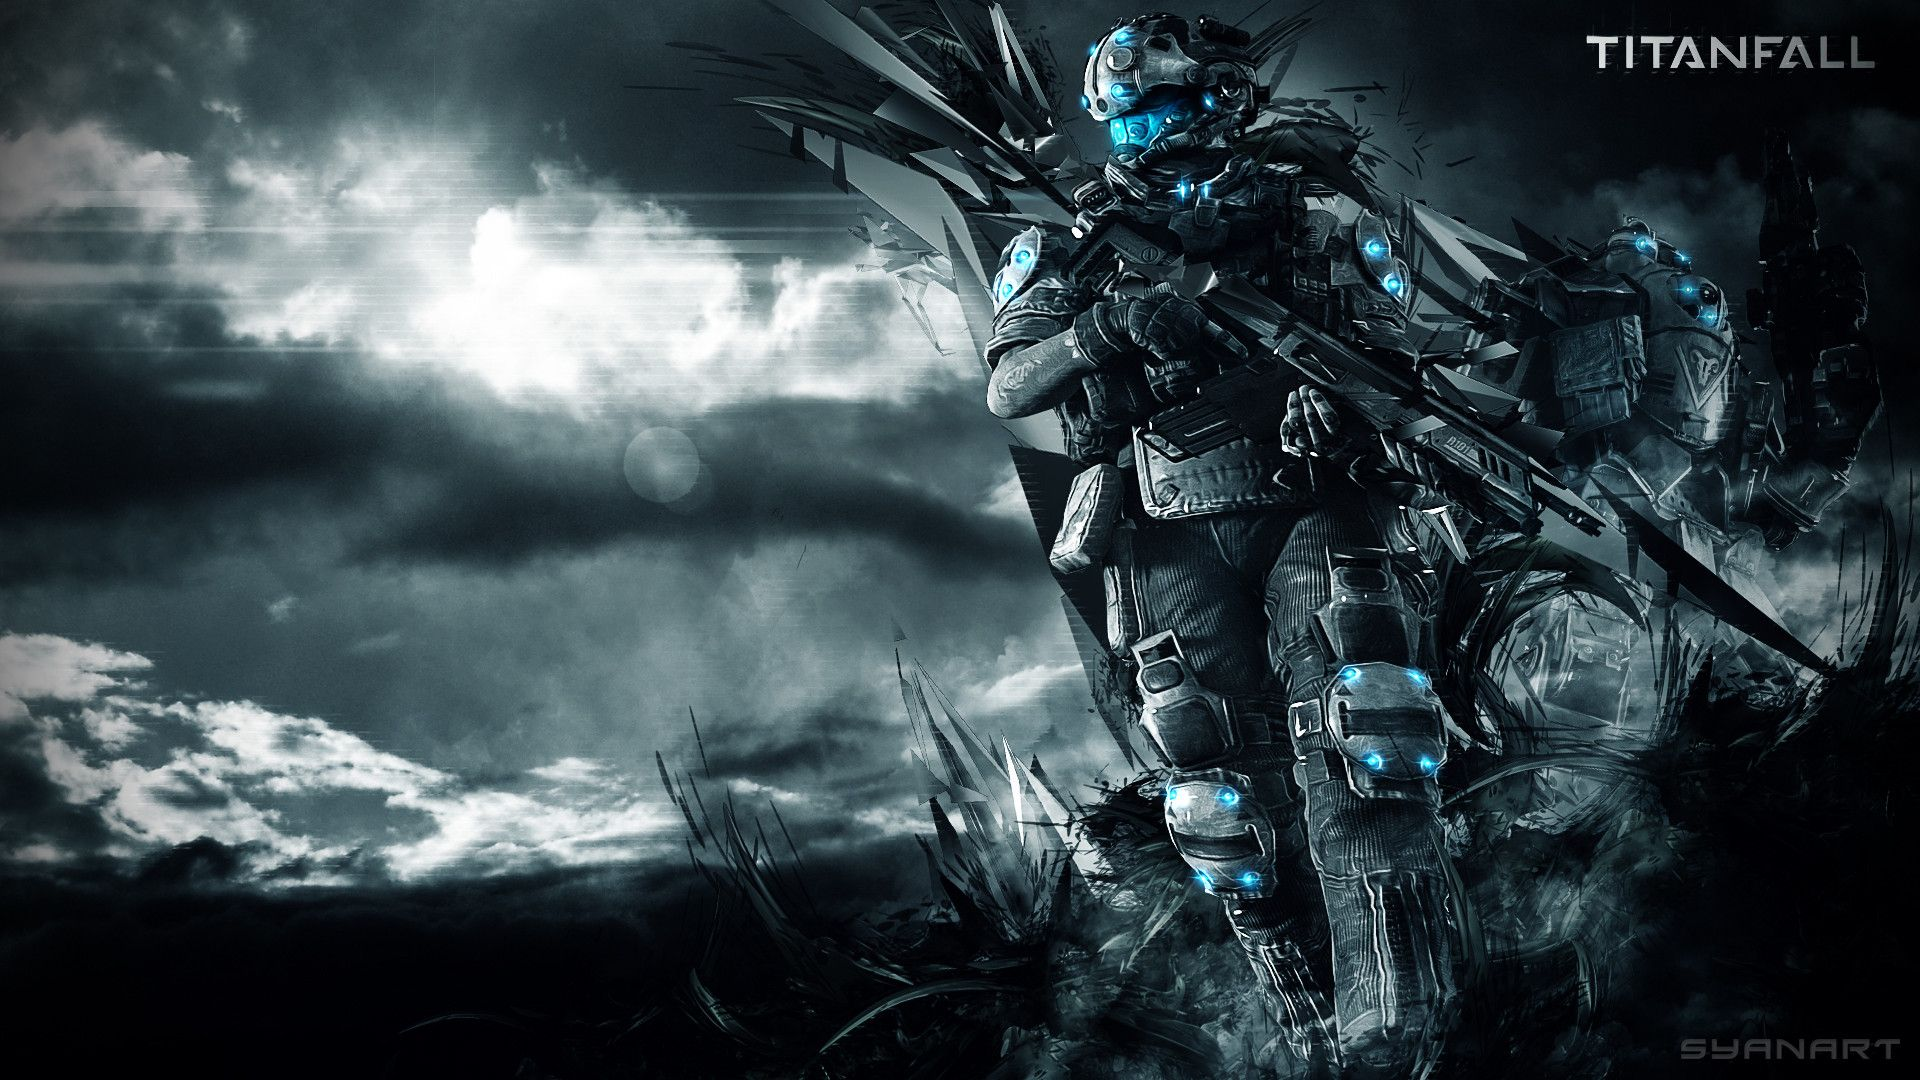 Titanfall Hd Wallpapers Backgrounds Wallpaper 20001196